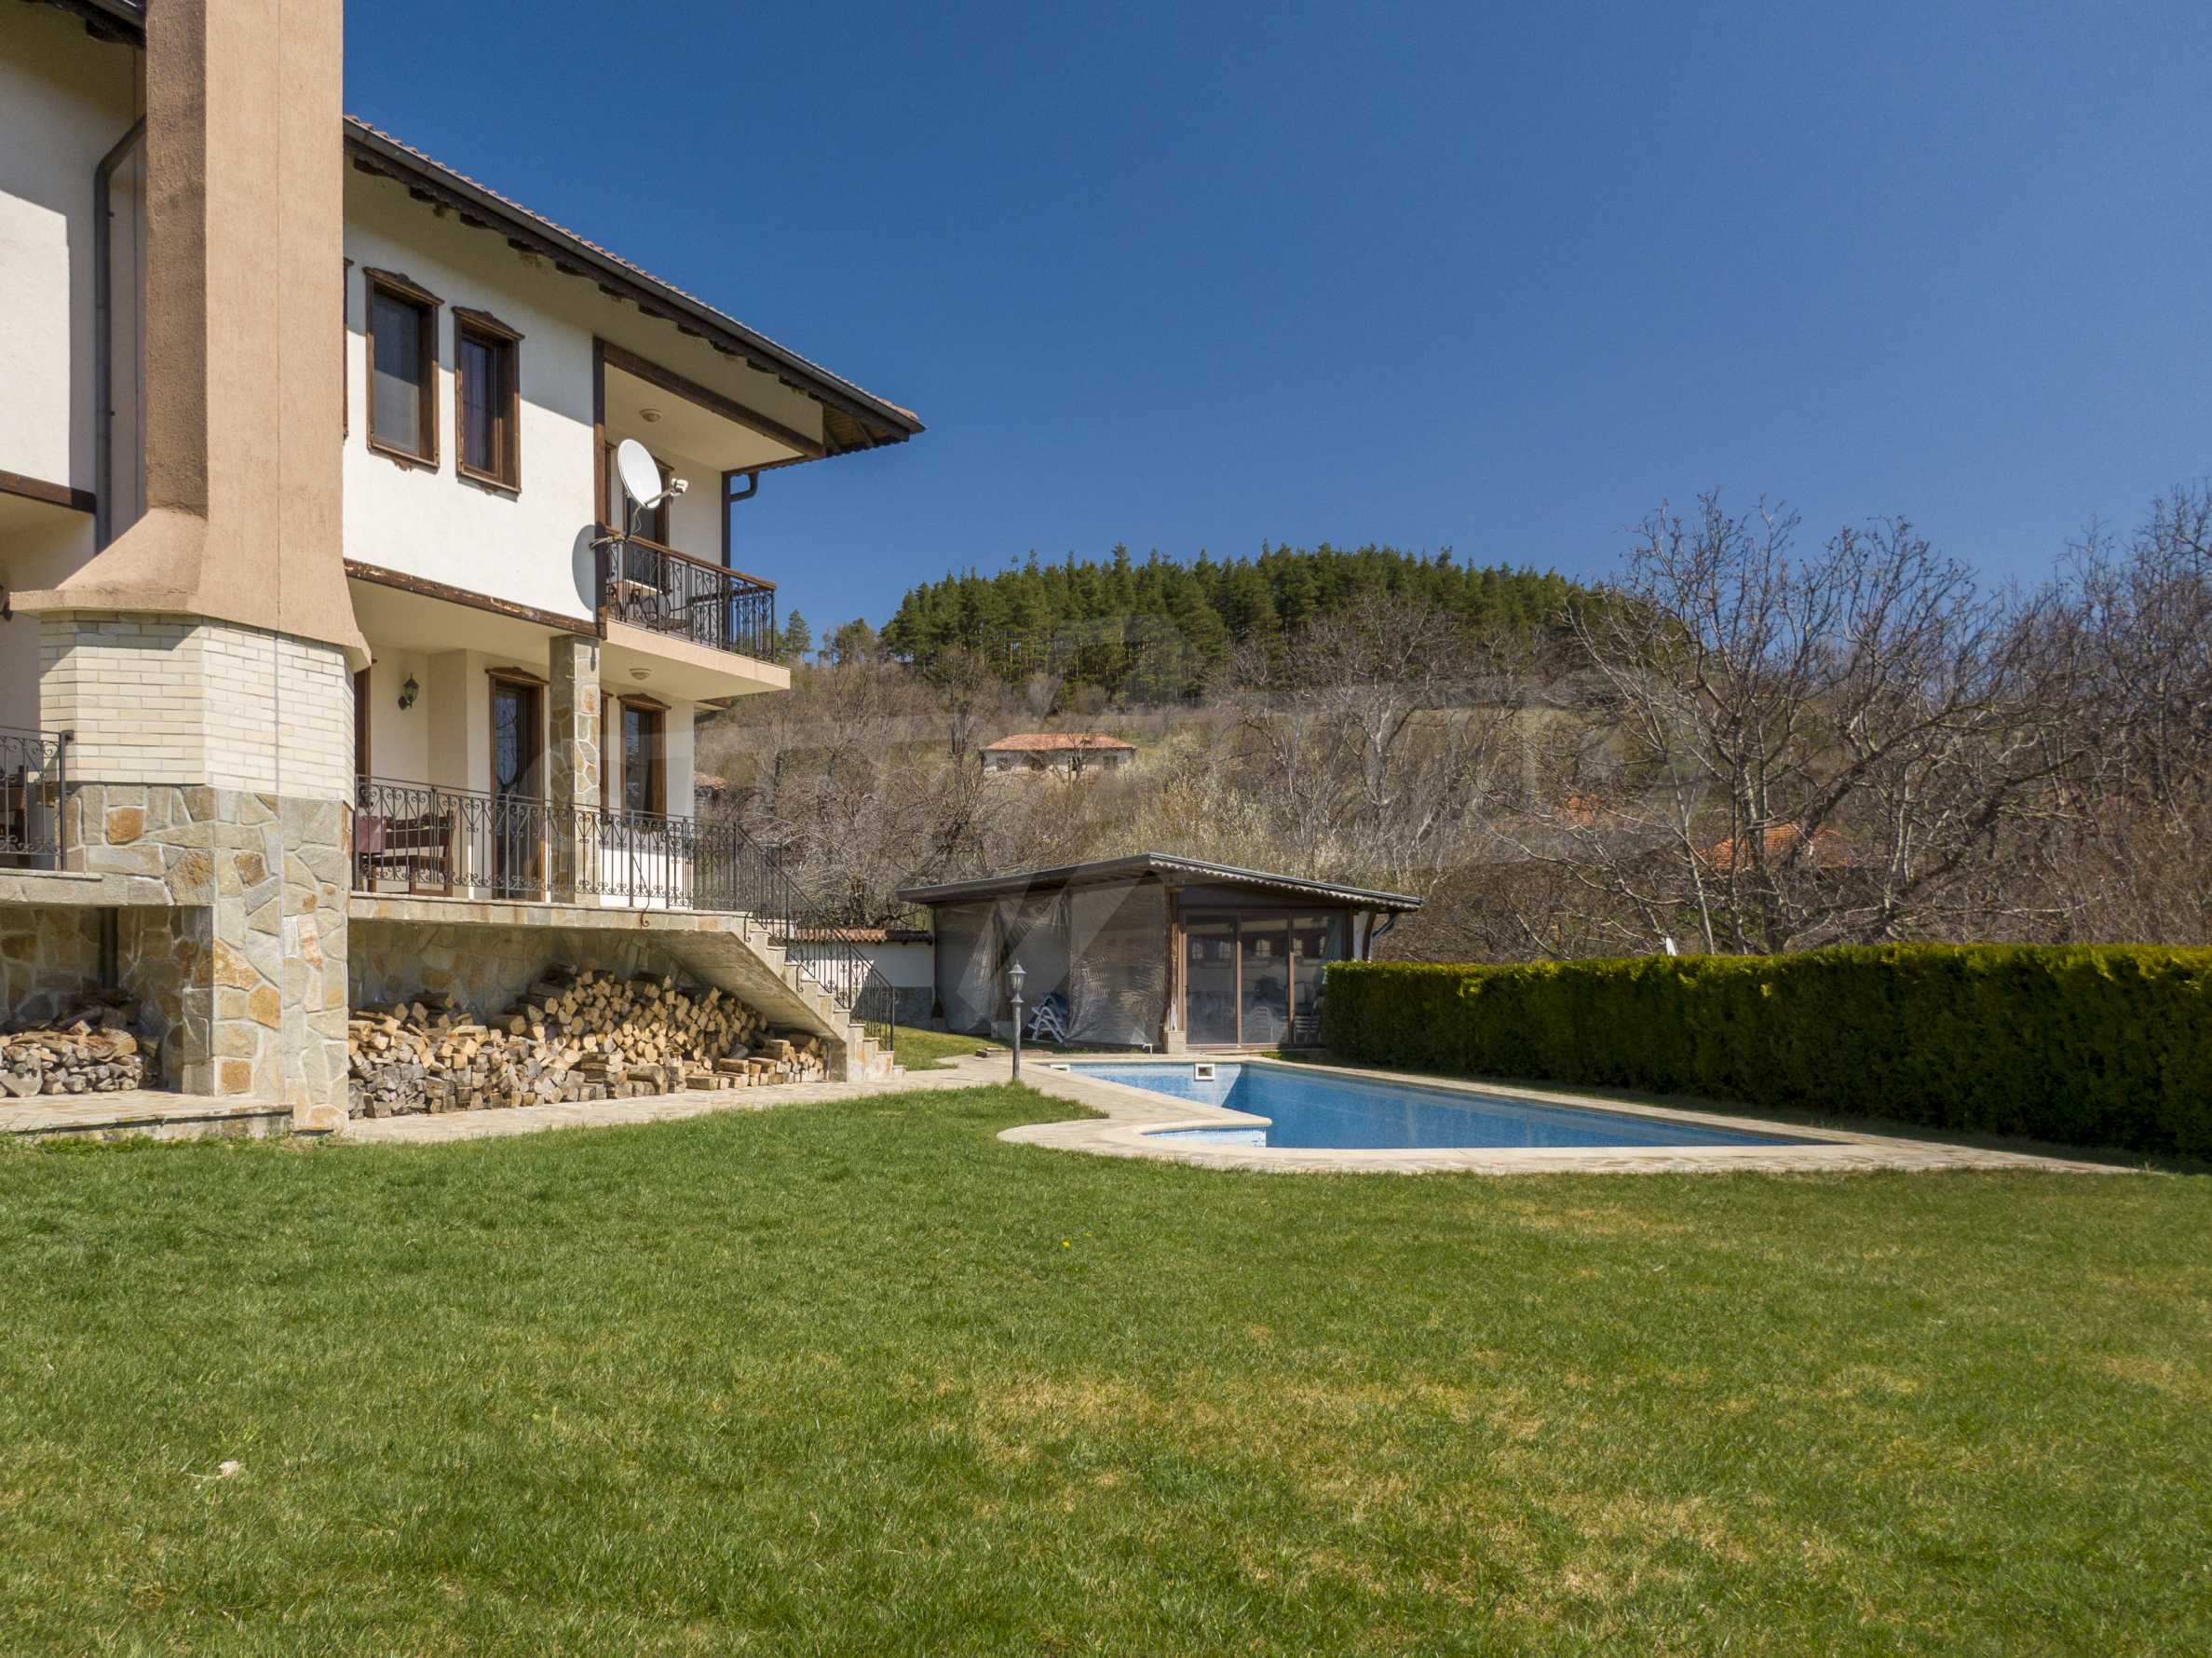 Two houses with swimming pool located close to a lake 5